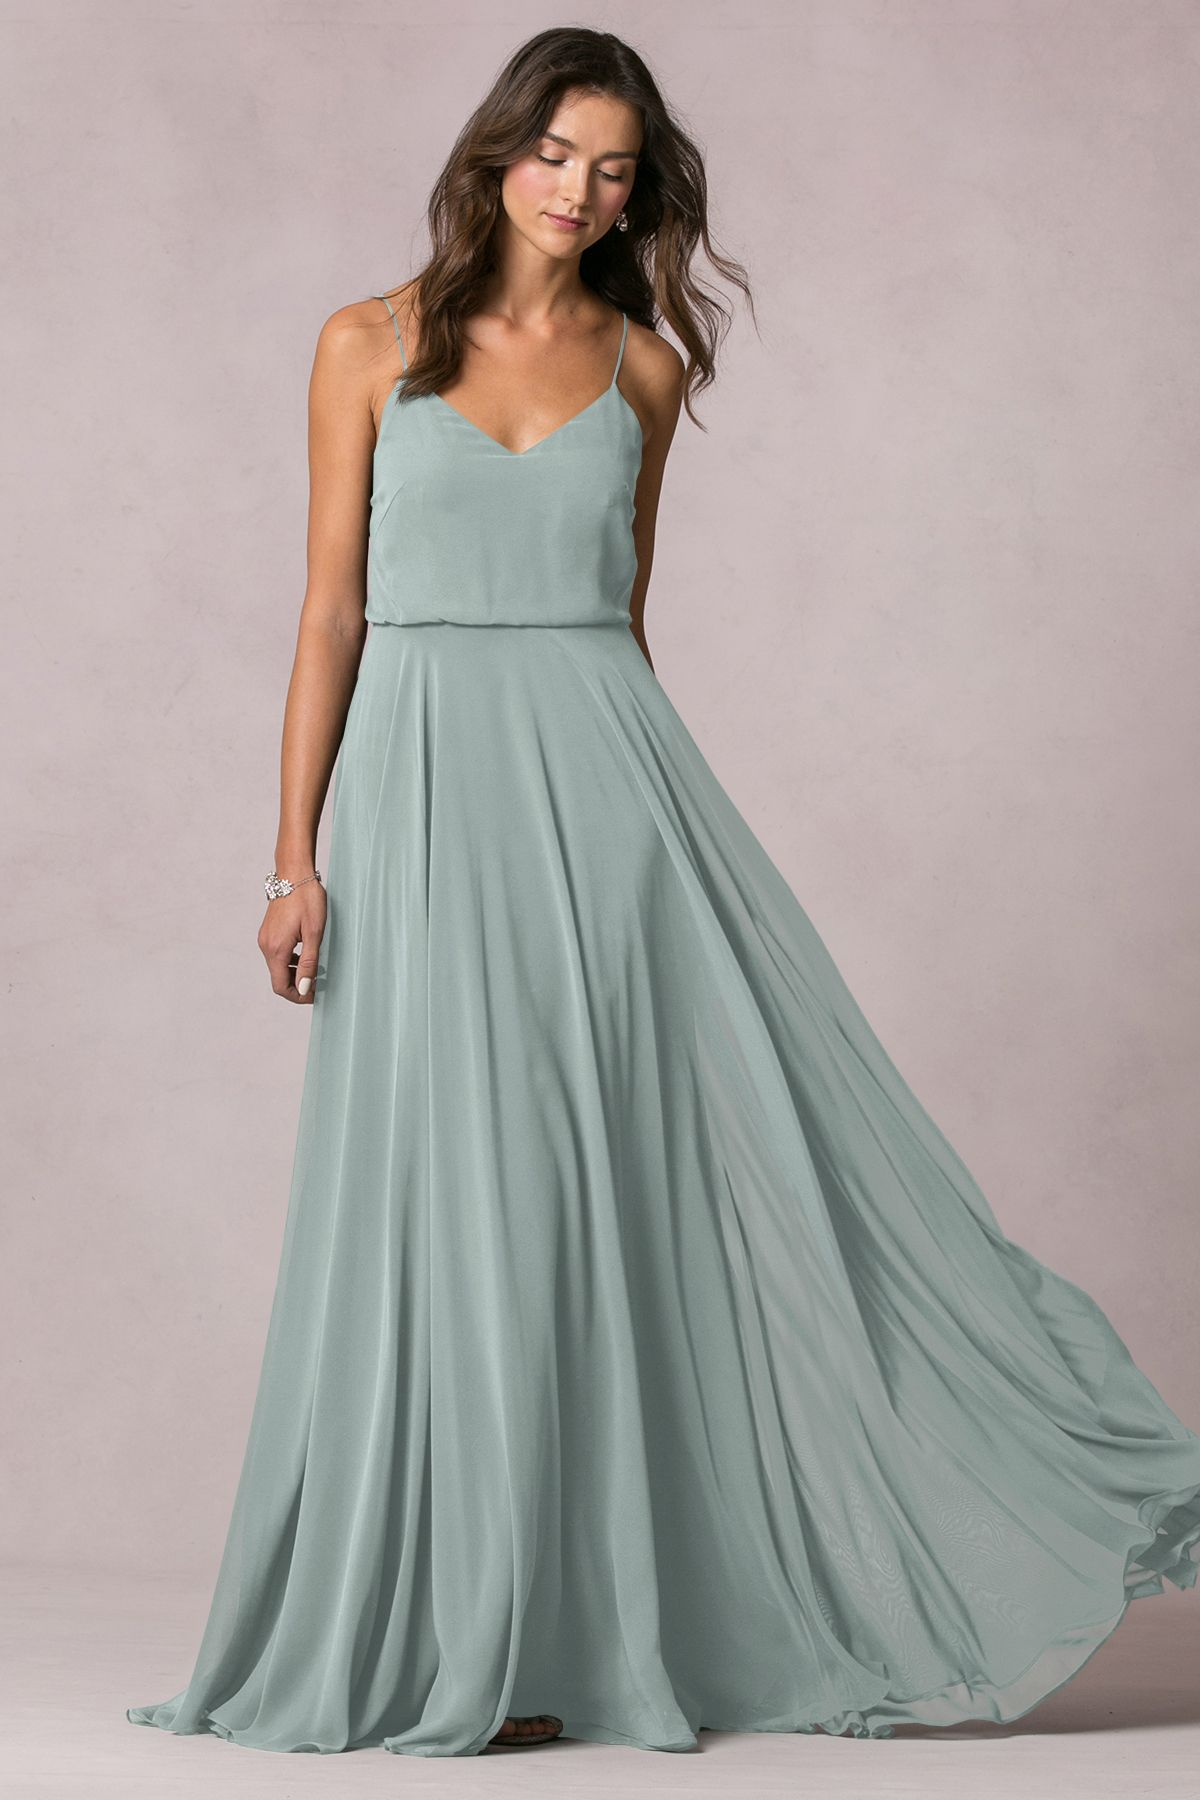 f5d97ecf6ea Luxe Chiffon - View All Dresses - Bridal Party. Jenny Yoo - Inesse - Morning  Mist